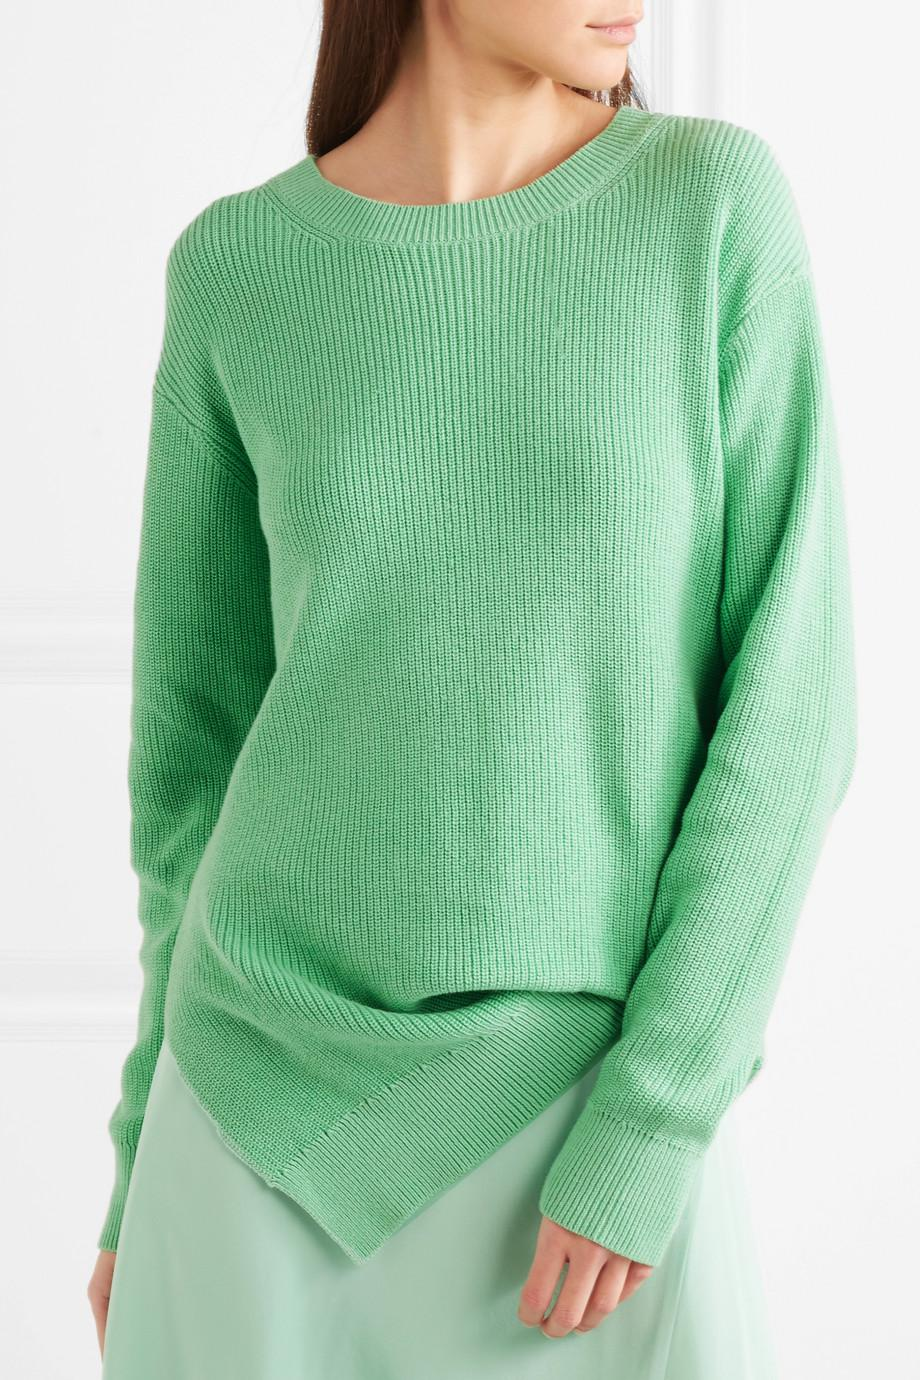 Fern Pickup Asymmetric Cotton Sweater - Light green Sies Marjan Shop RRCT6